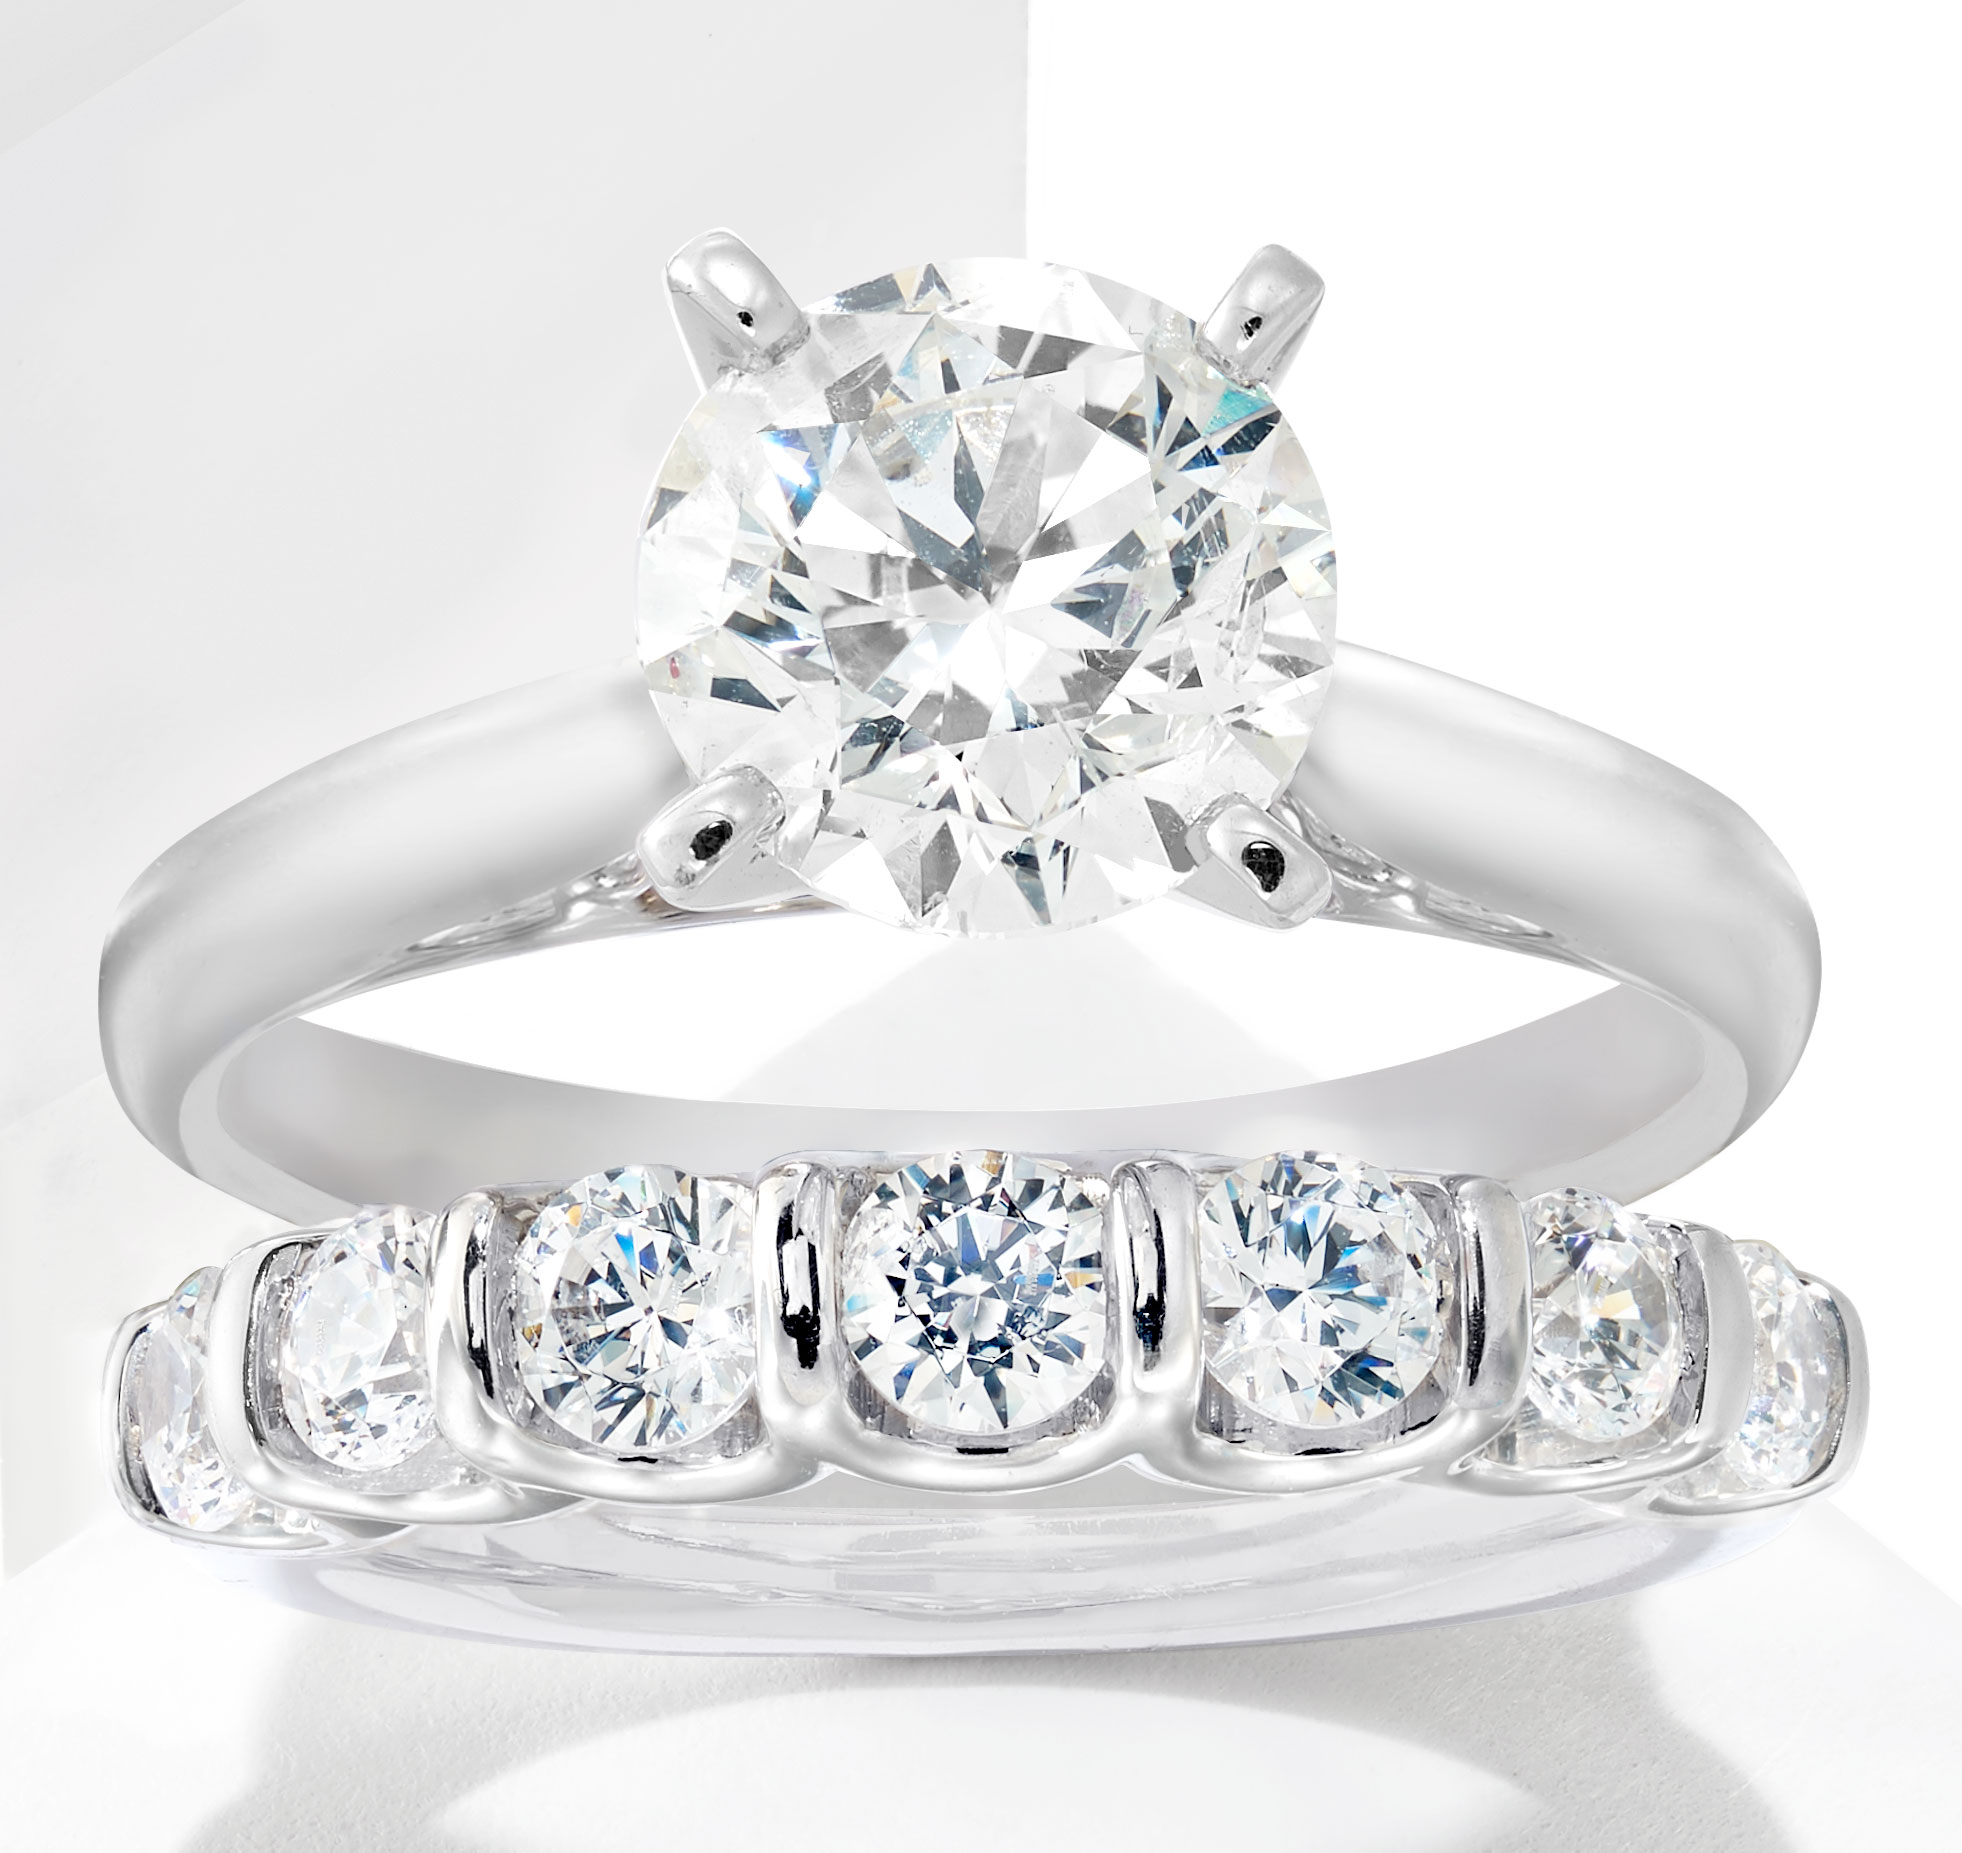 jewellers of engagement qitok ic bouquet moss diamond square image ben product pagespeed ring